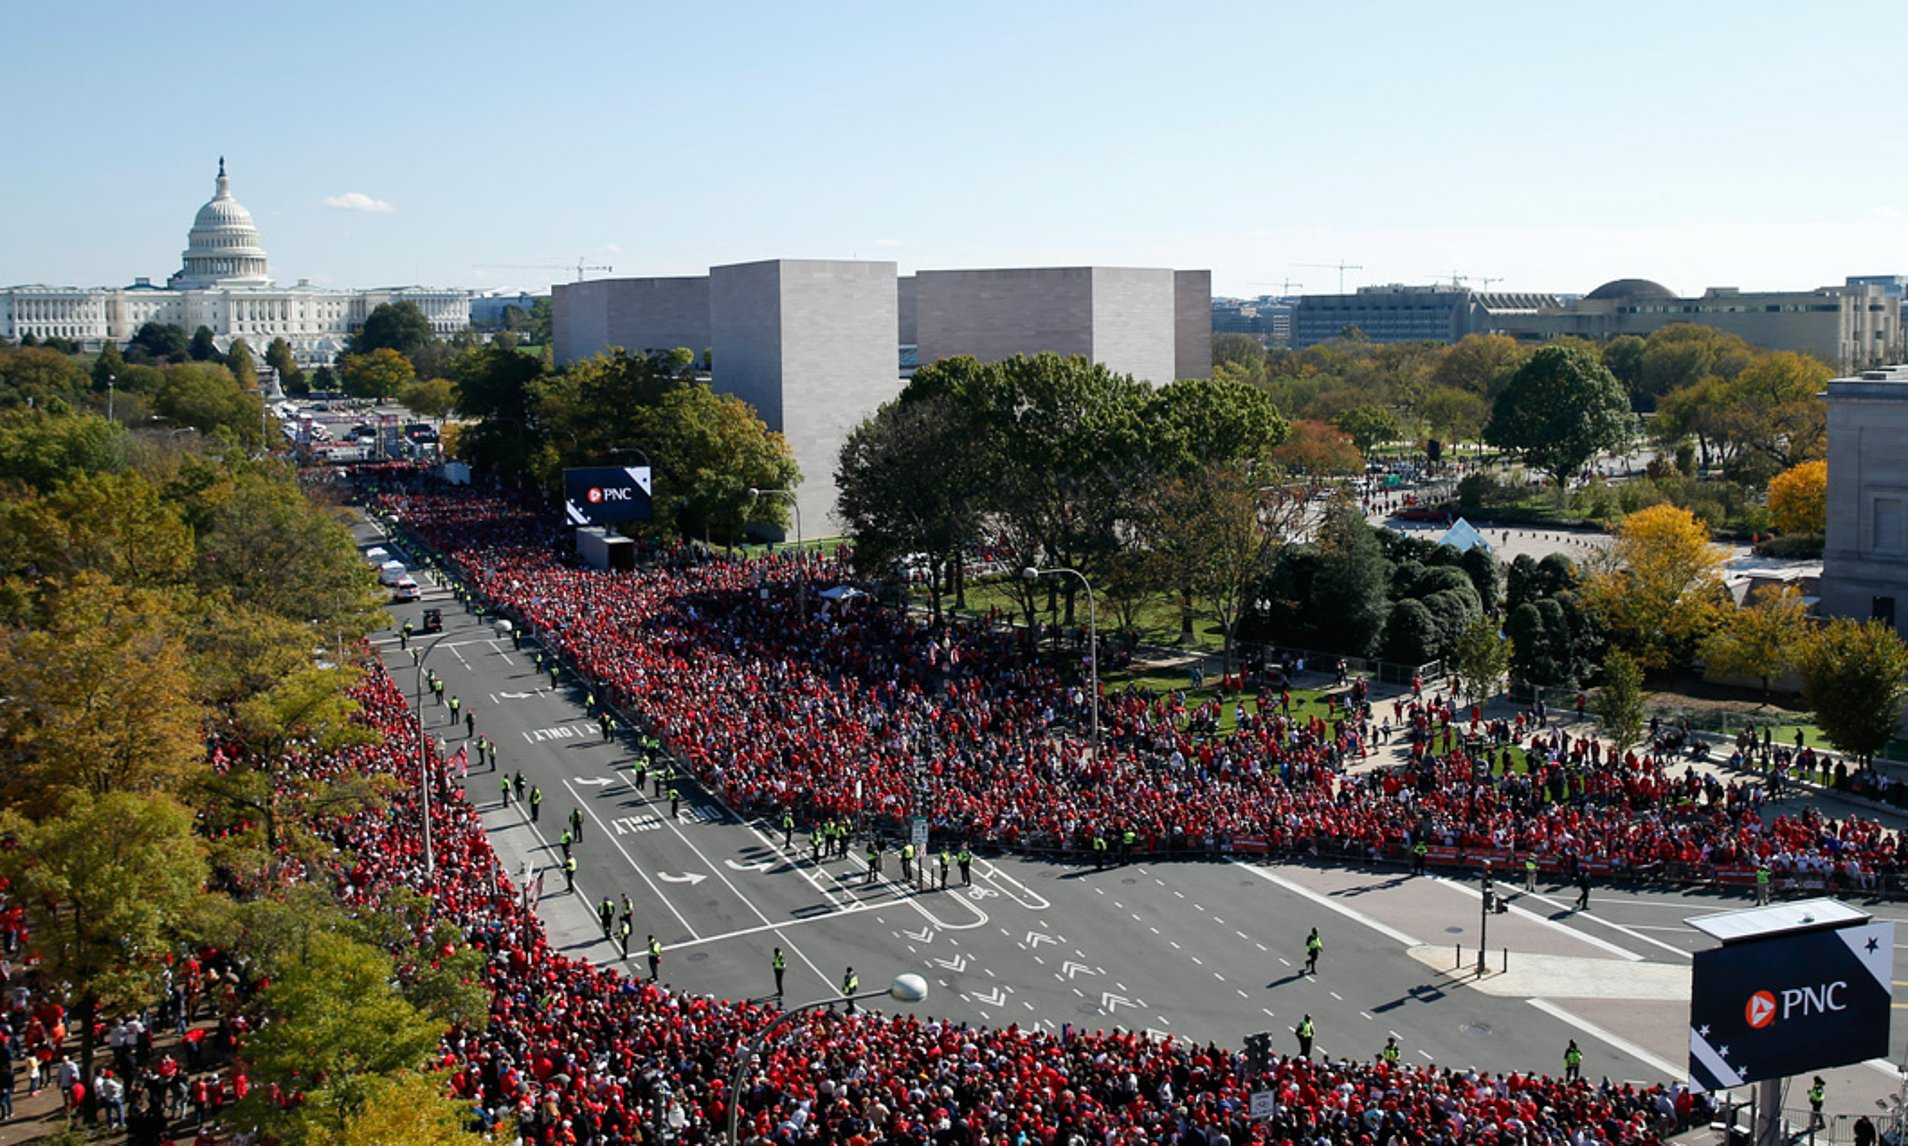 Thousands of Washington Nationals fans turn out for World Series victory parade.